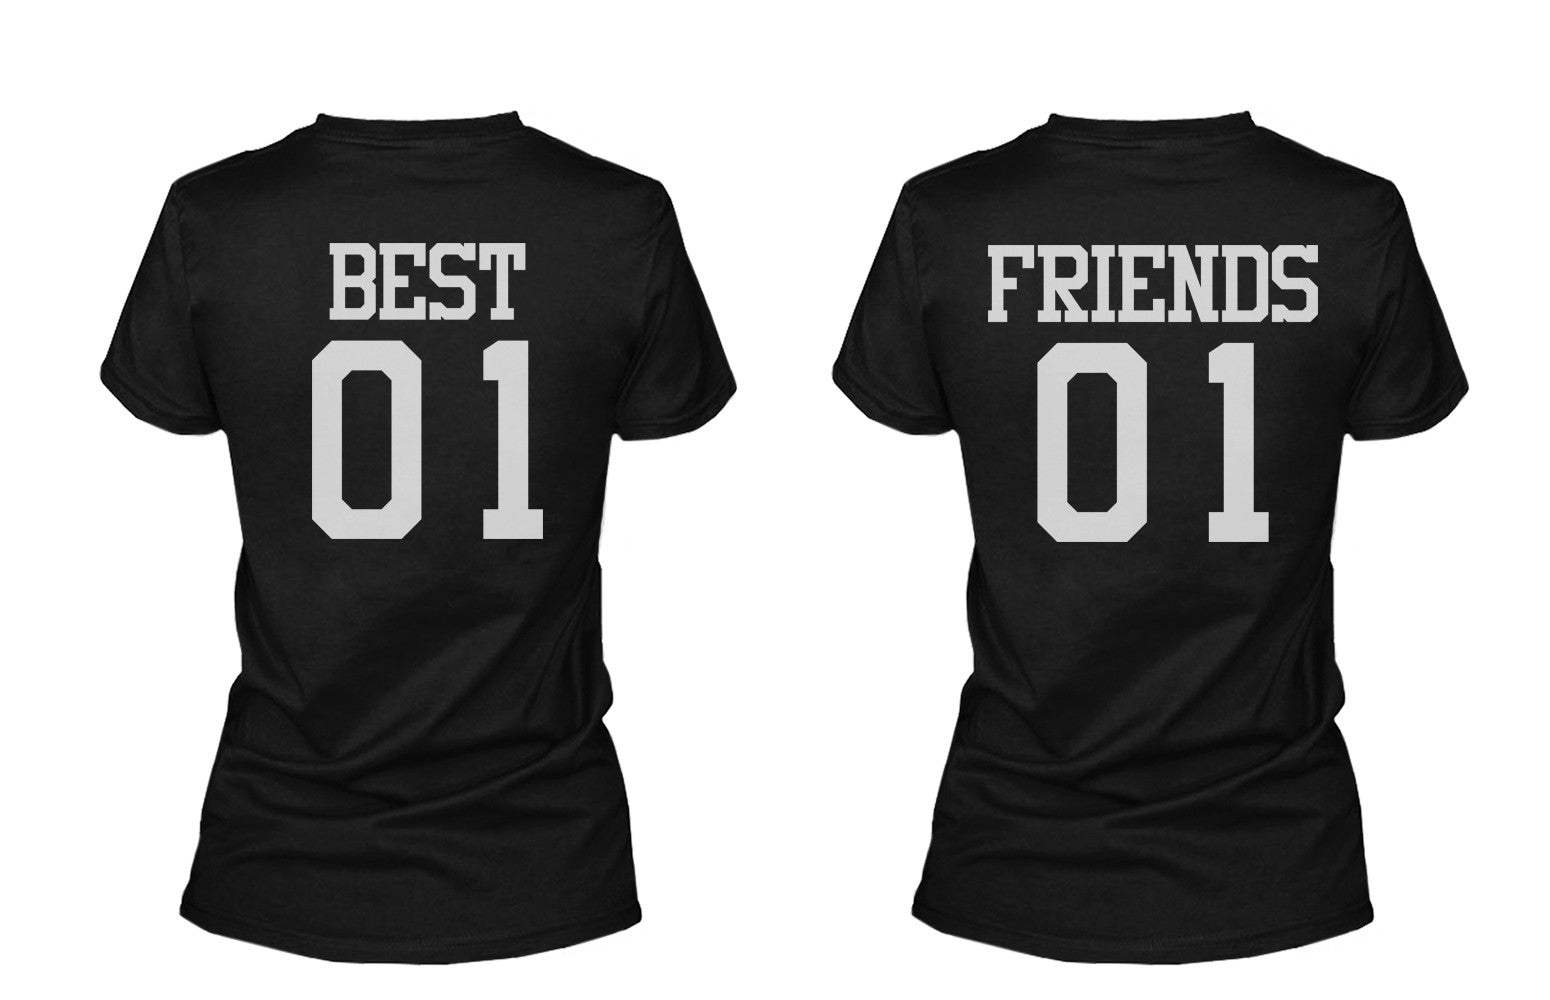 913279f3407b1 Best 01 Friend 01 Matching Best Friends T Shirts BFF Tees For Two Girls  Friends -